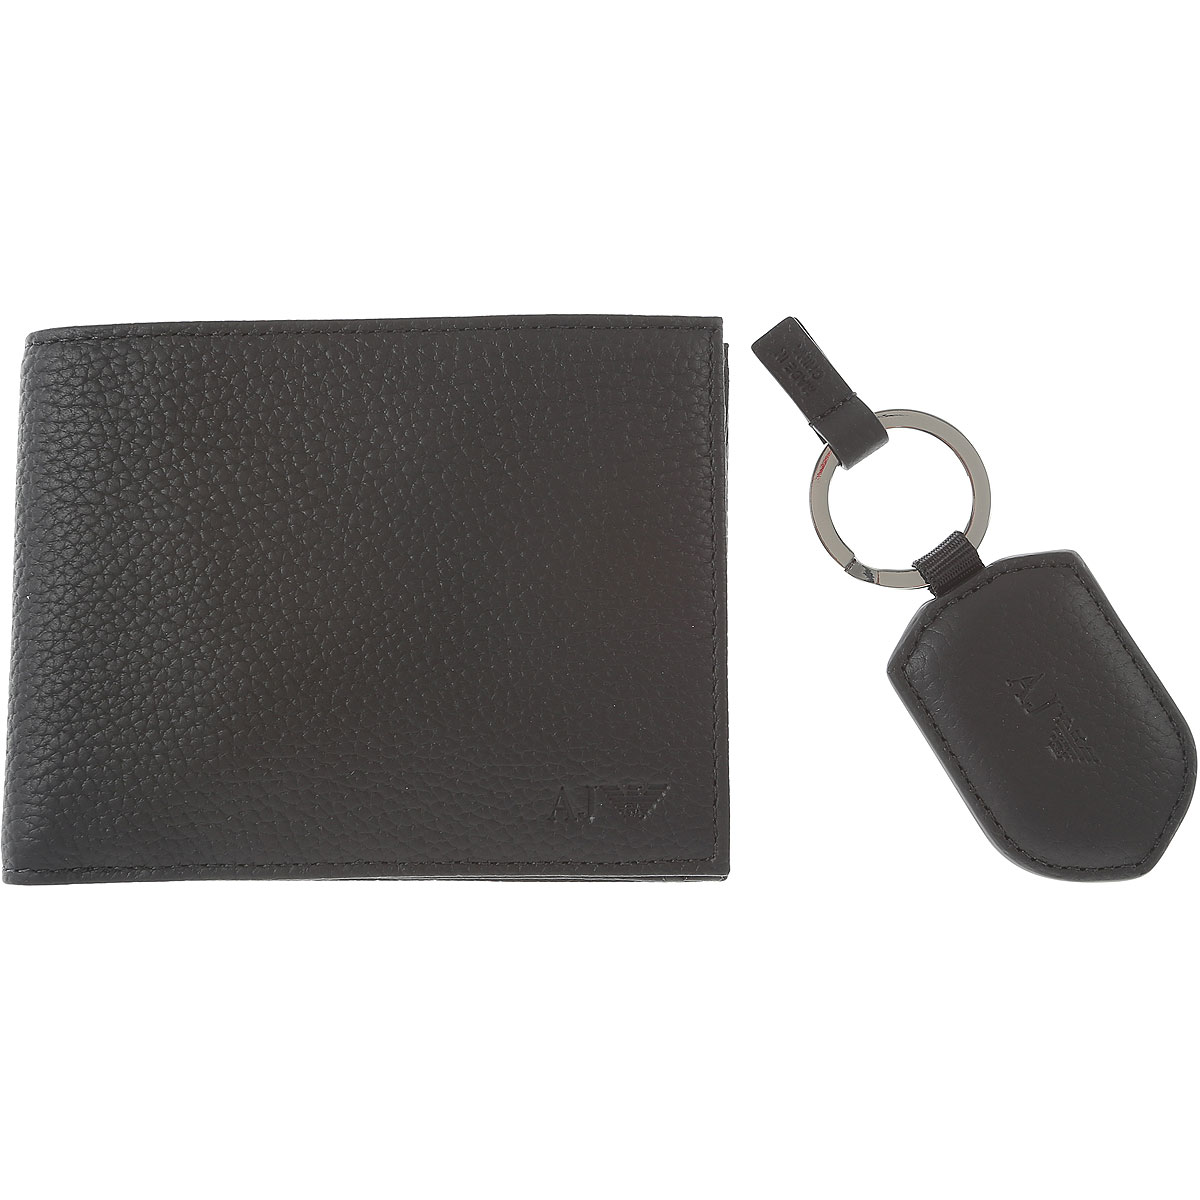 Armani Exchange Key Chain for Men, Key Ring On Sale in Outlet, Black, Genuine Leather, 2019